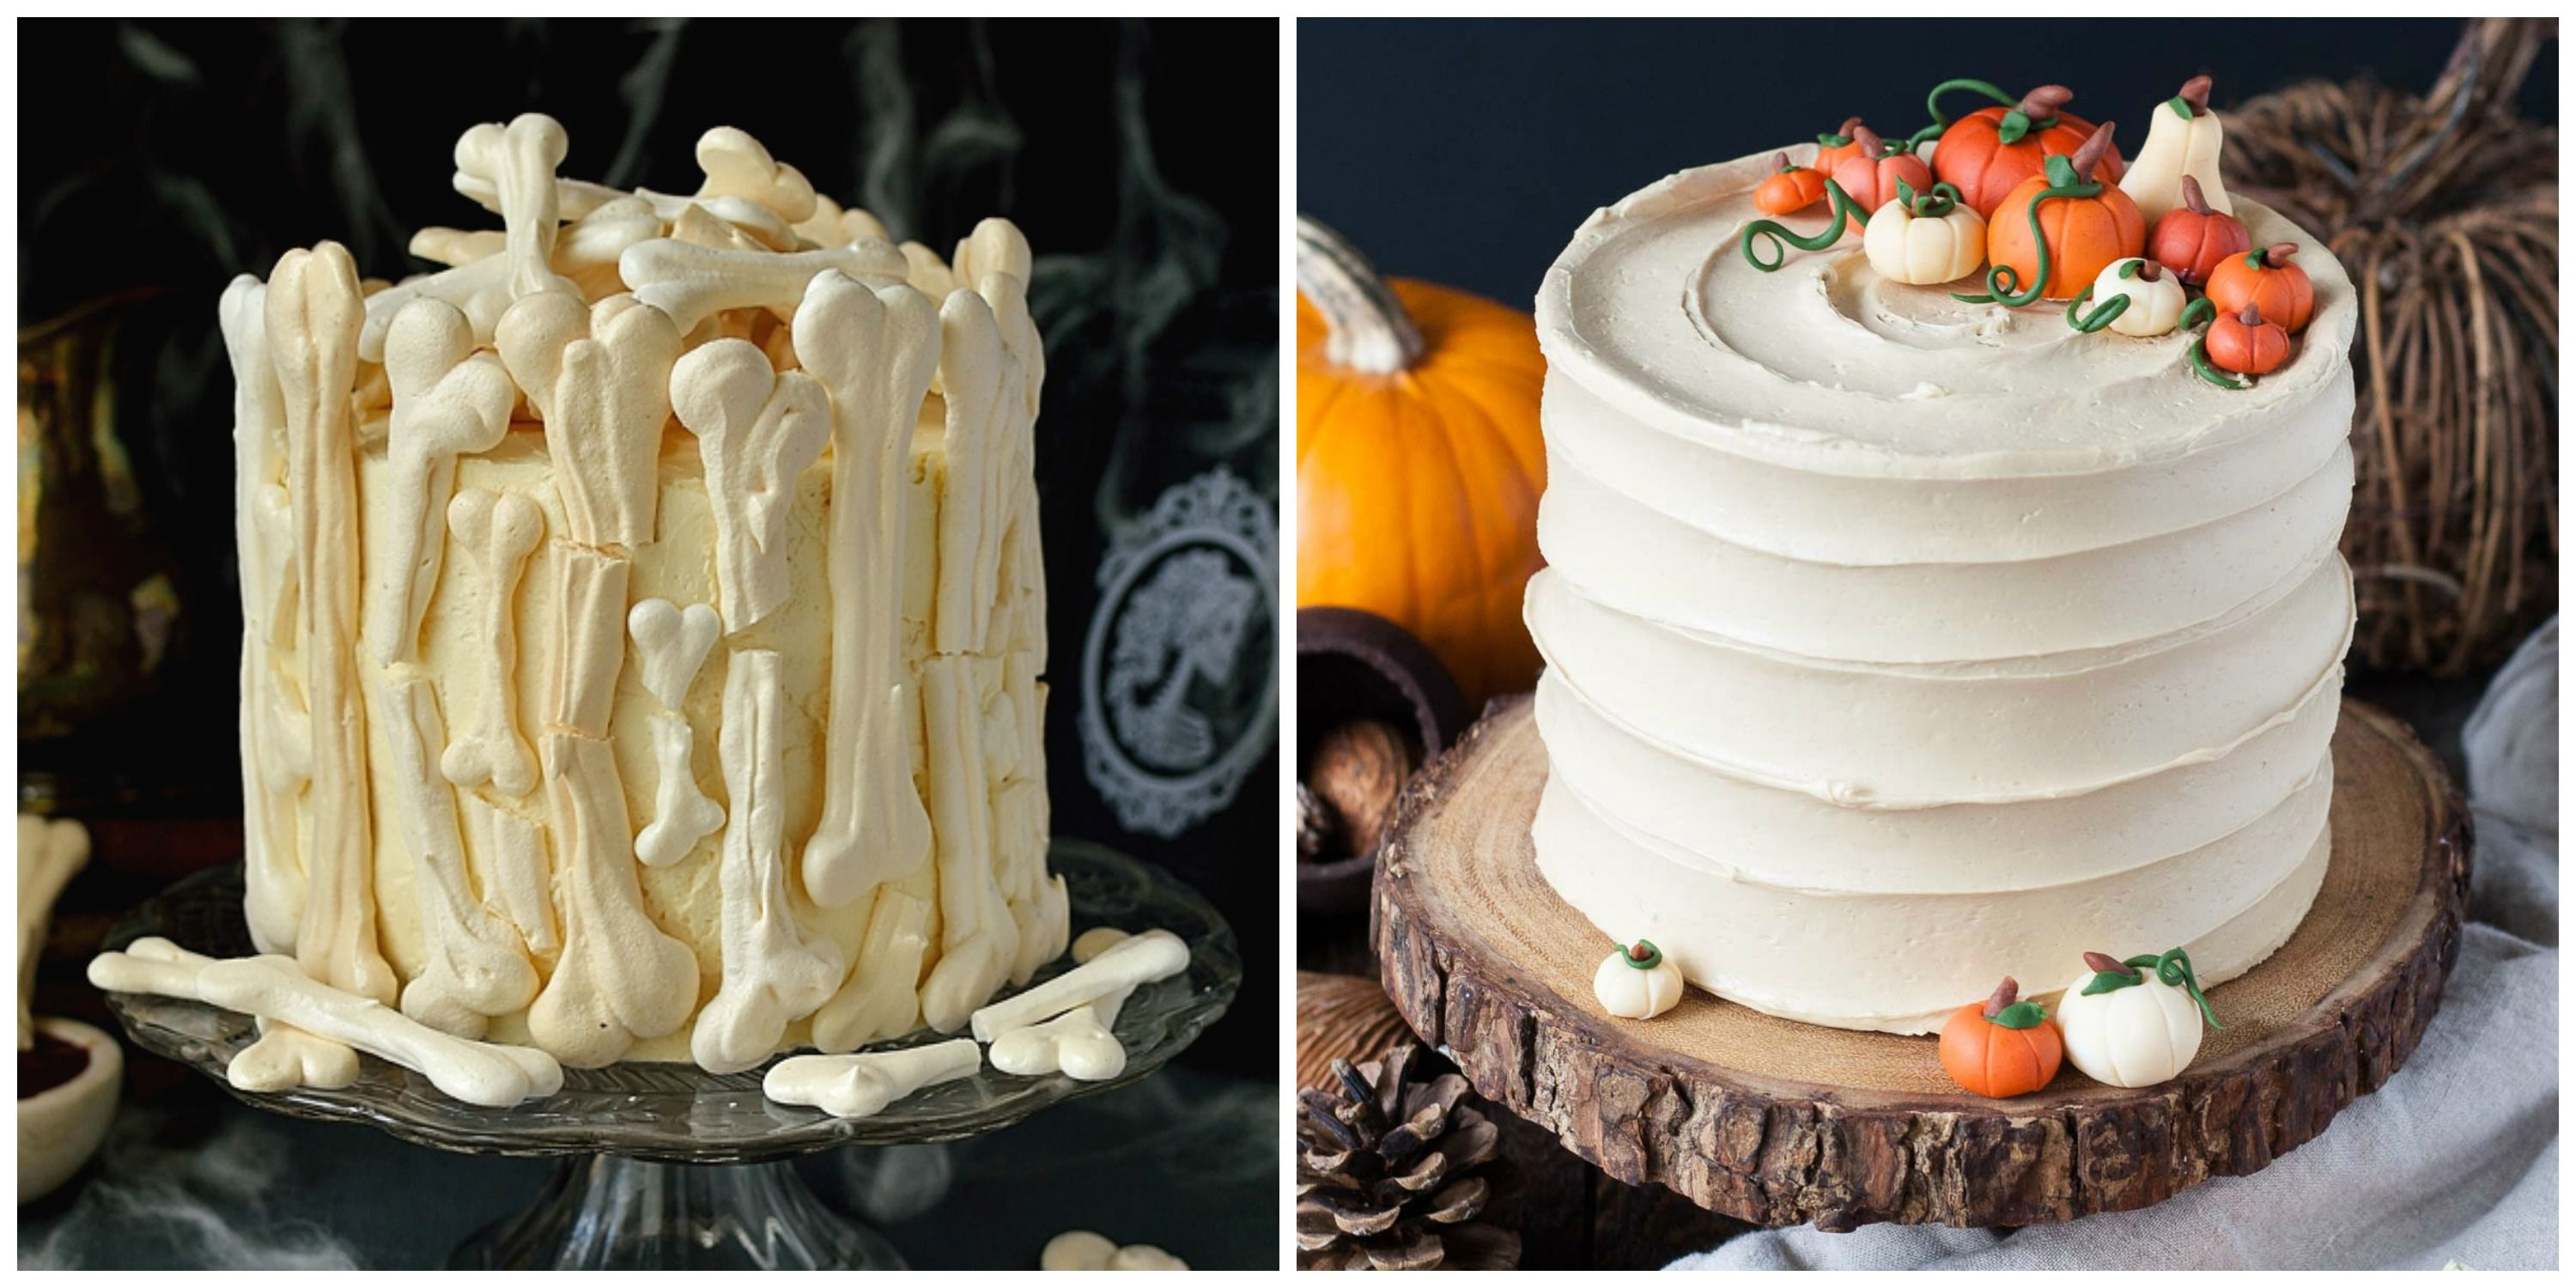 20 Best Halloween Cake Recipes & Decorating Ideas - Easy Halloween ...